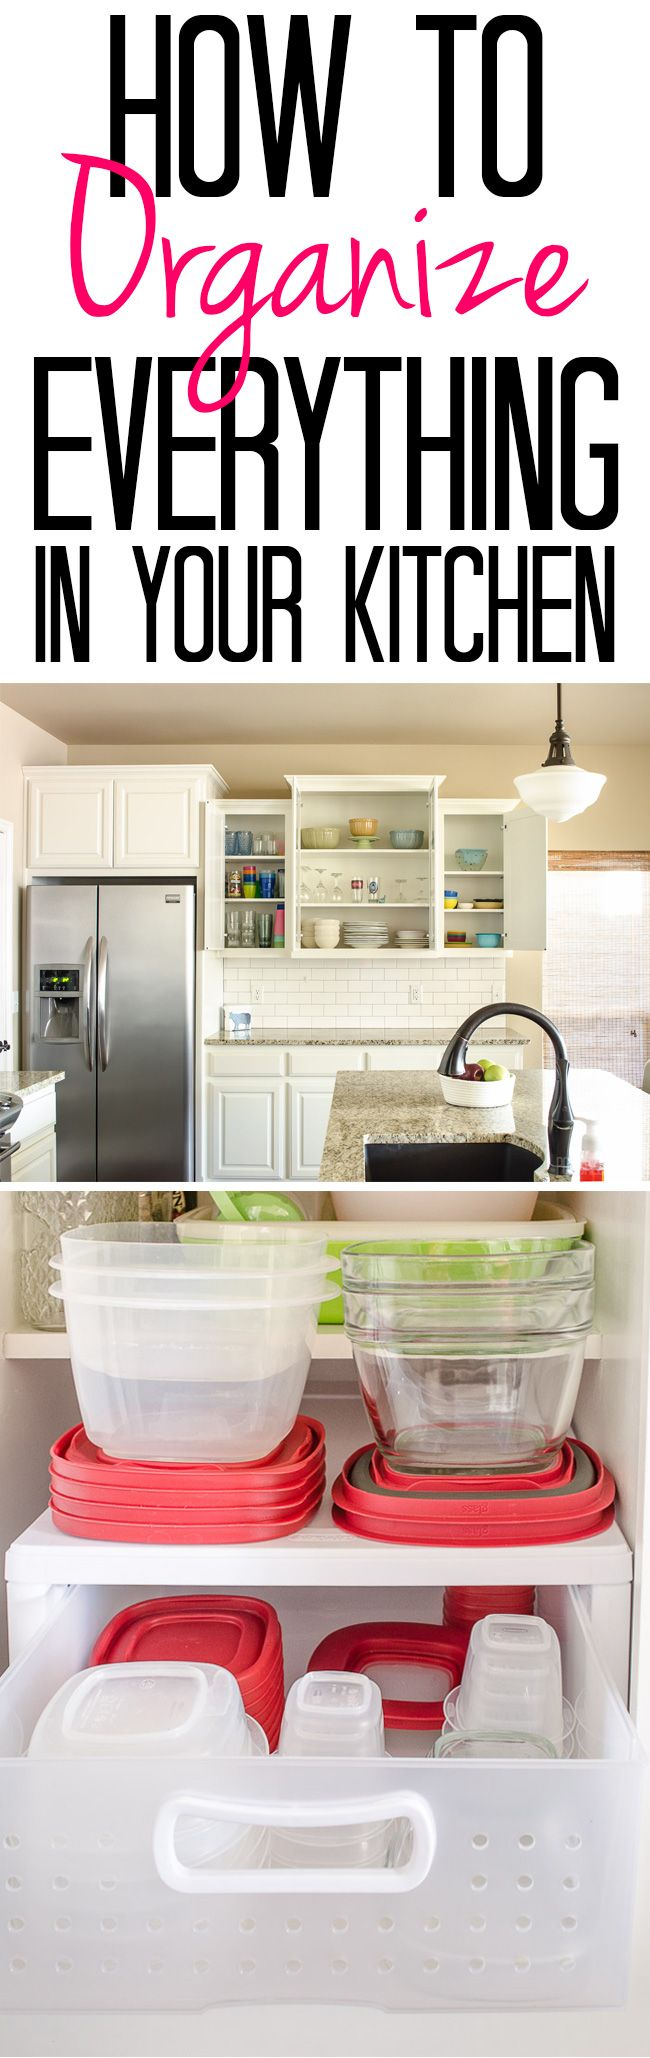 How to Organize Everything in Your Kitchen | Organizing, Kitchens ...